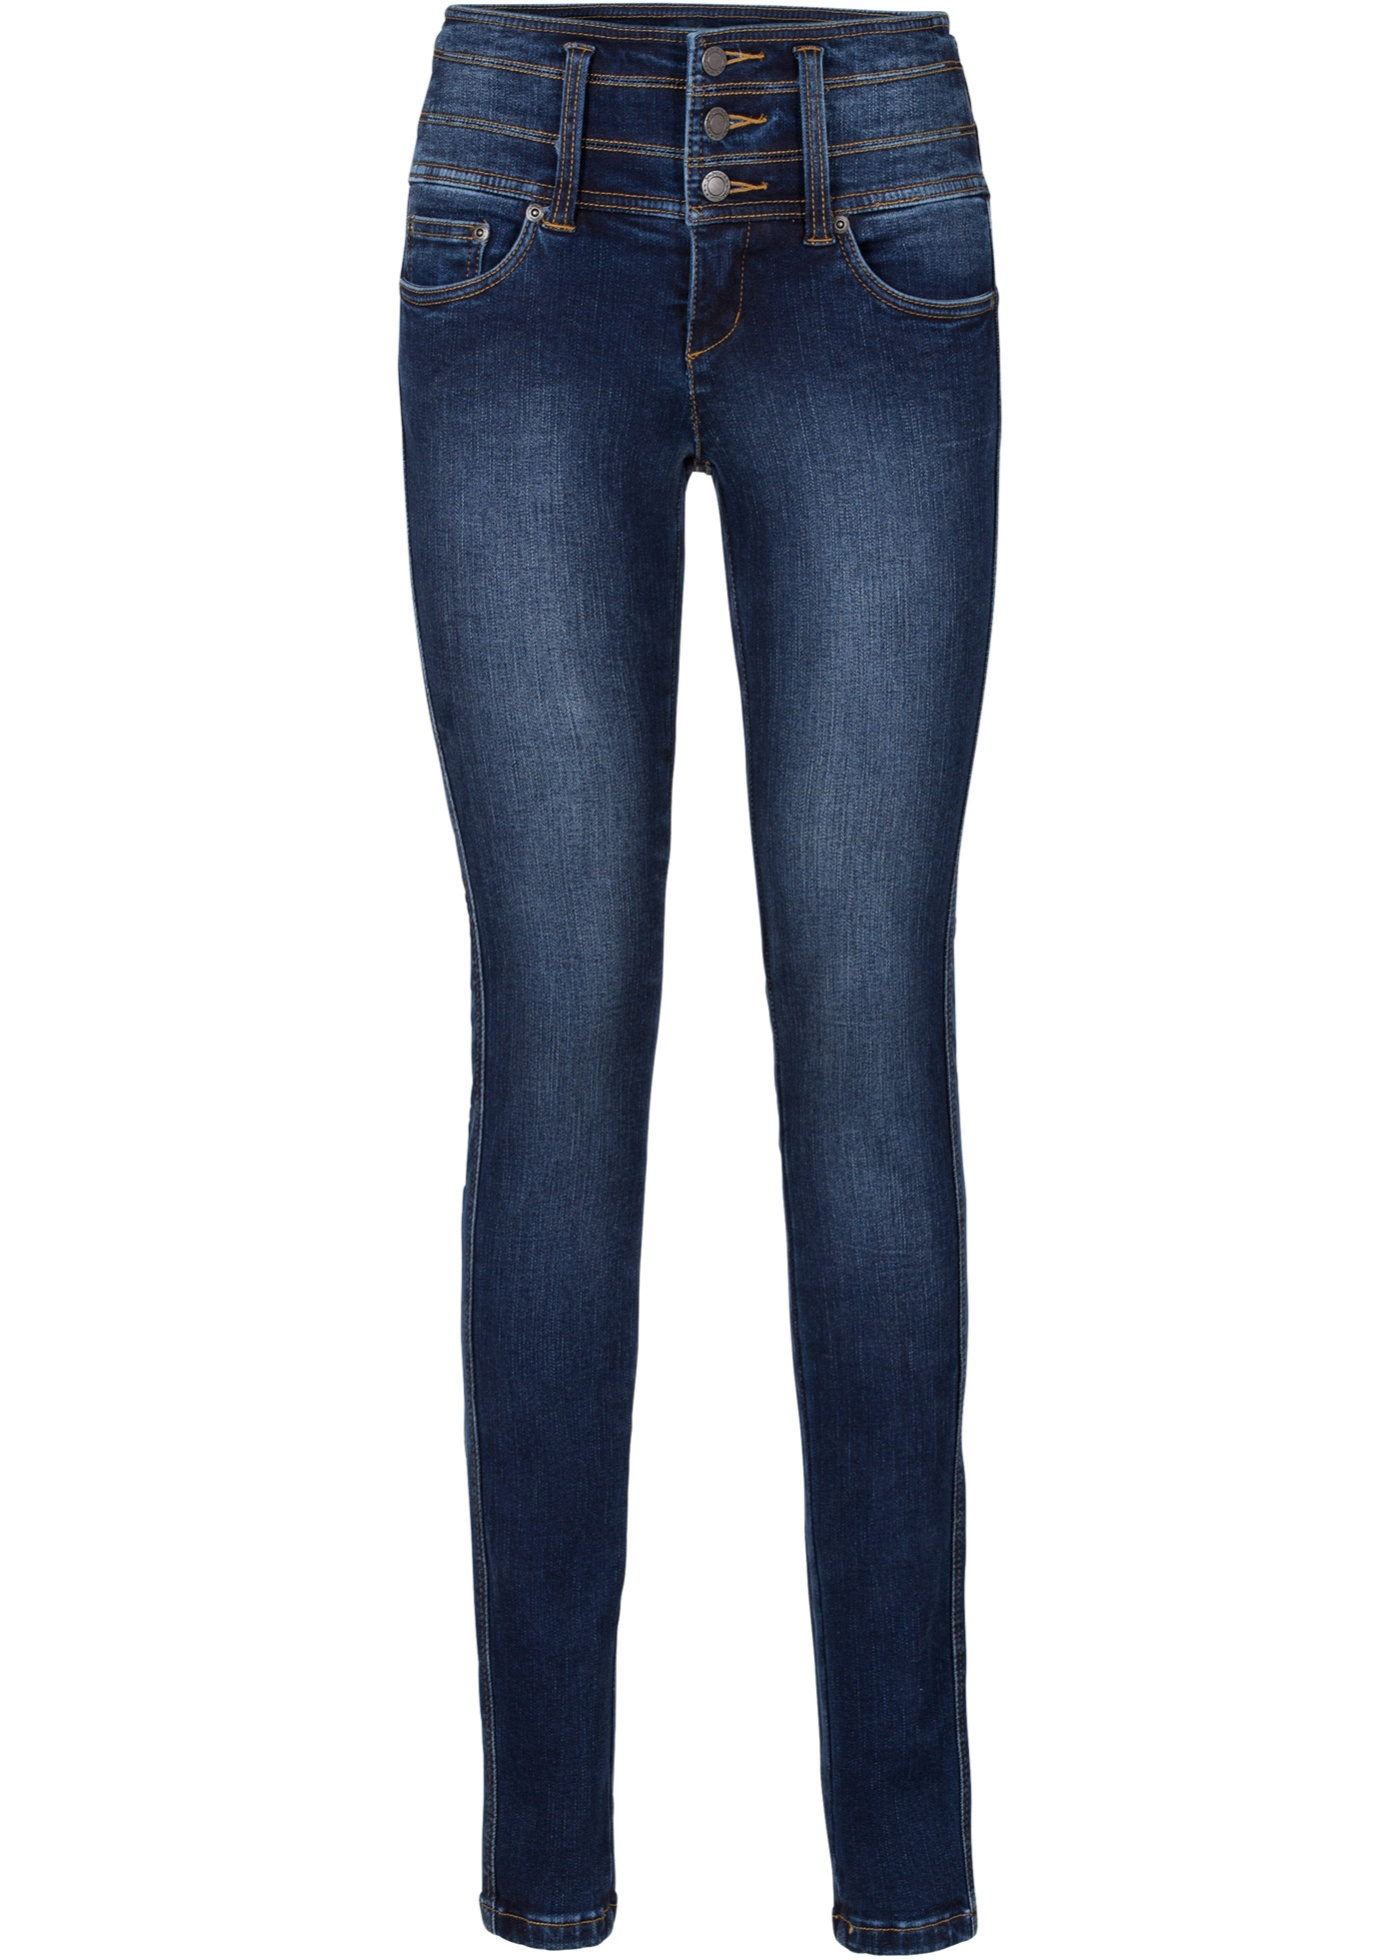 Bonprix - Shaping jeans 459.00